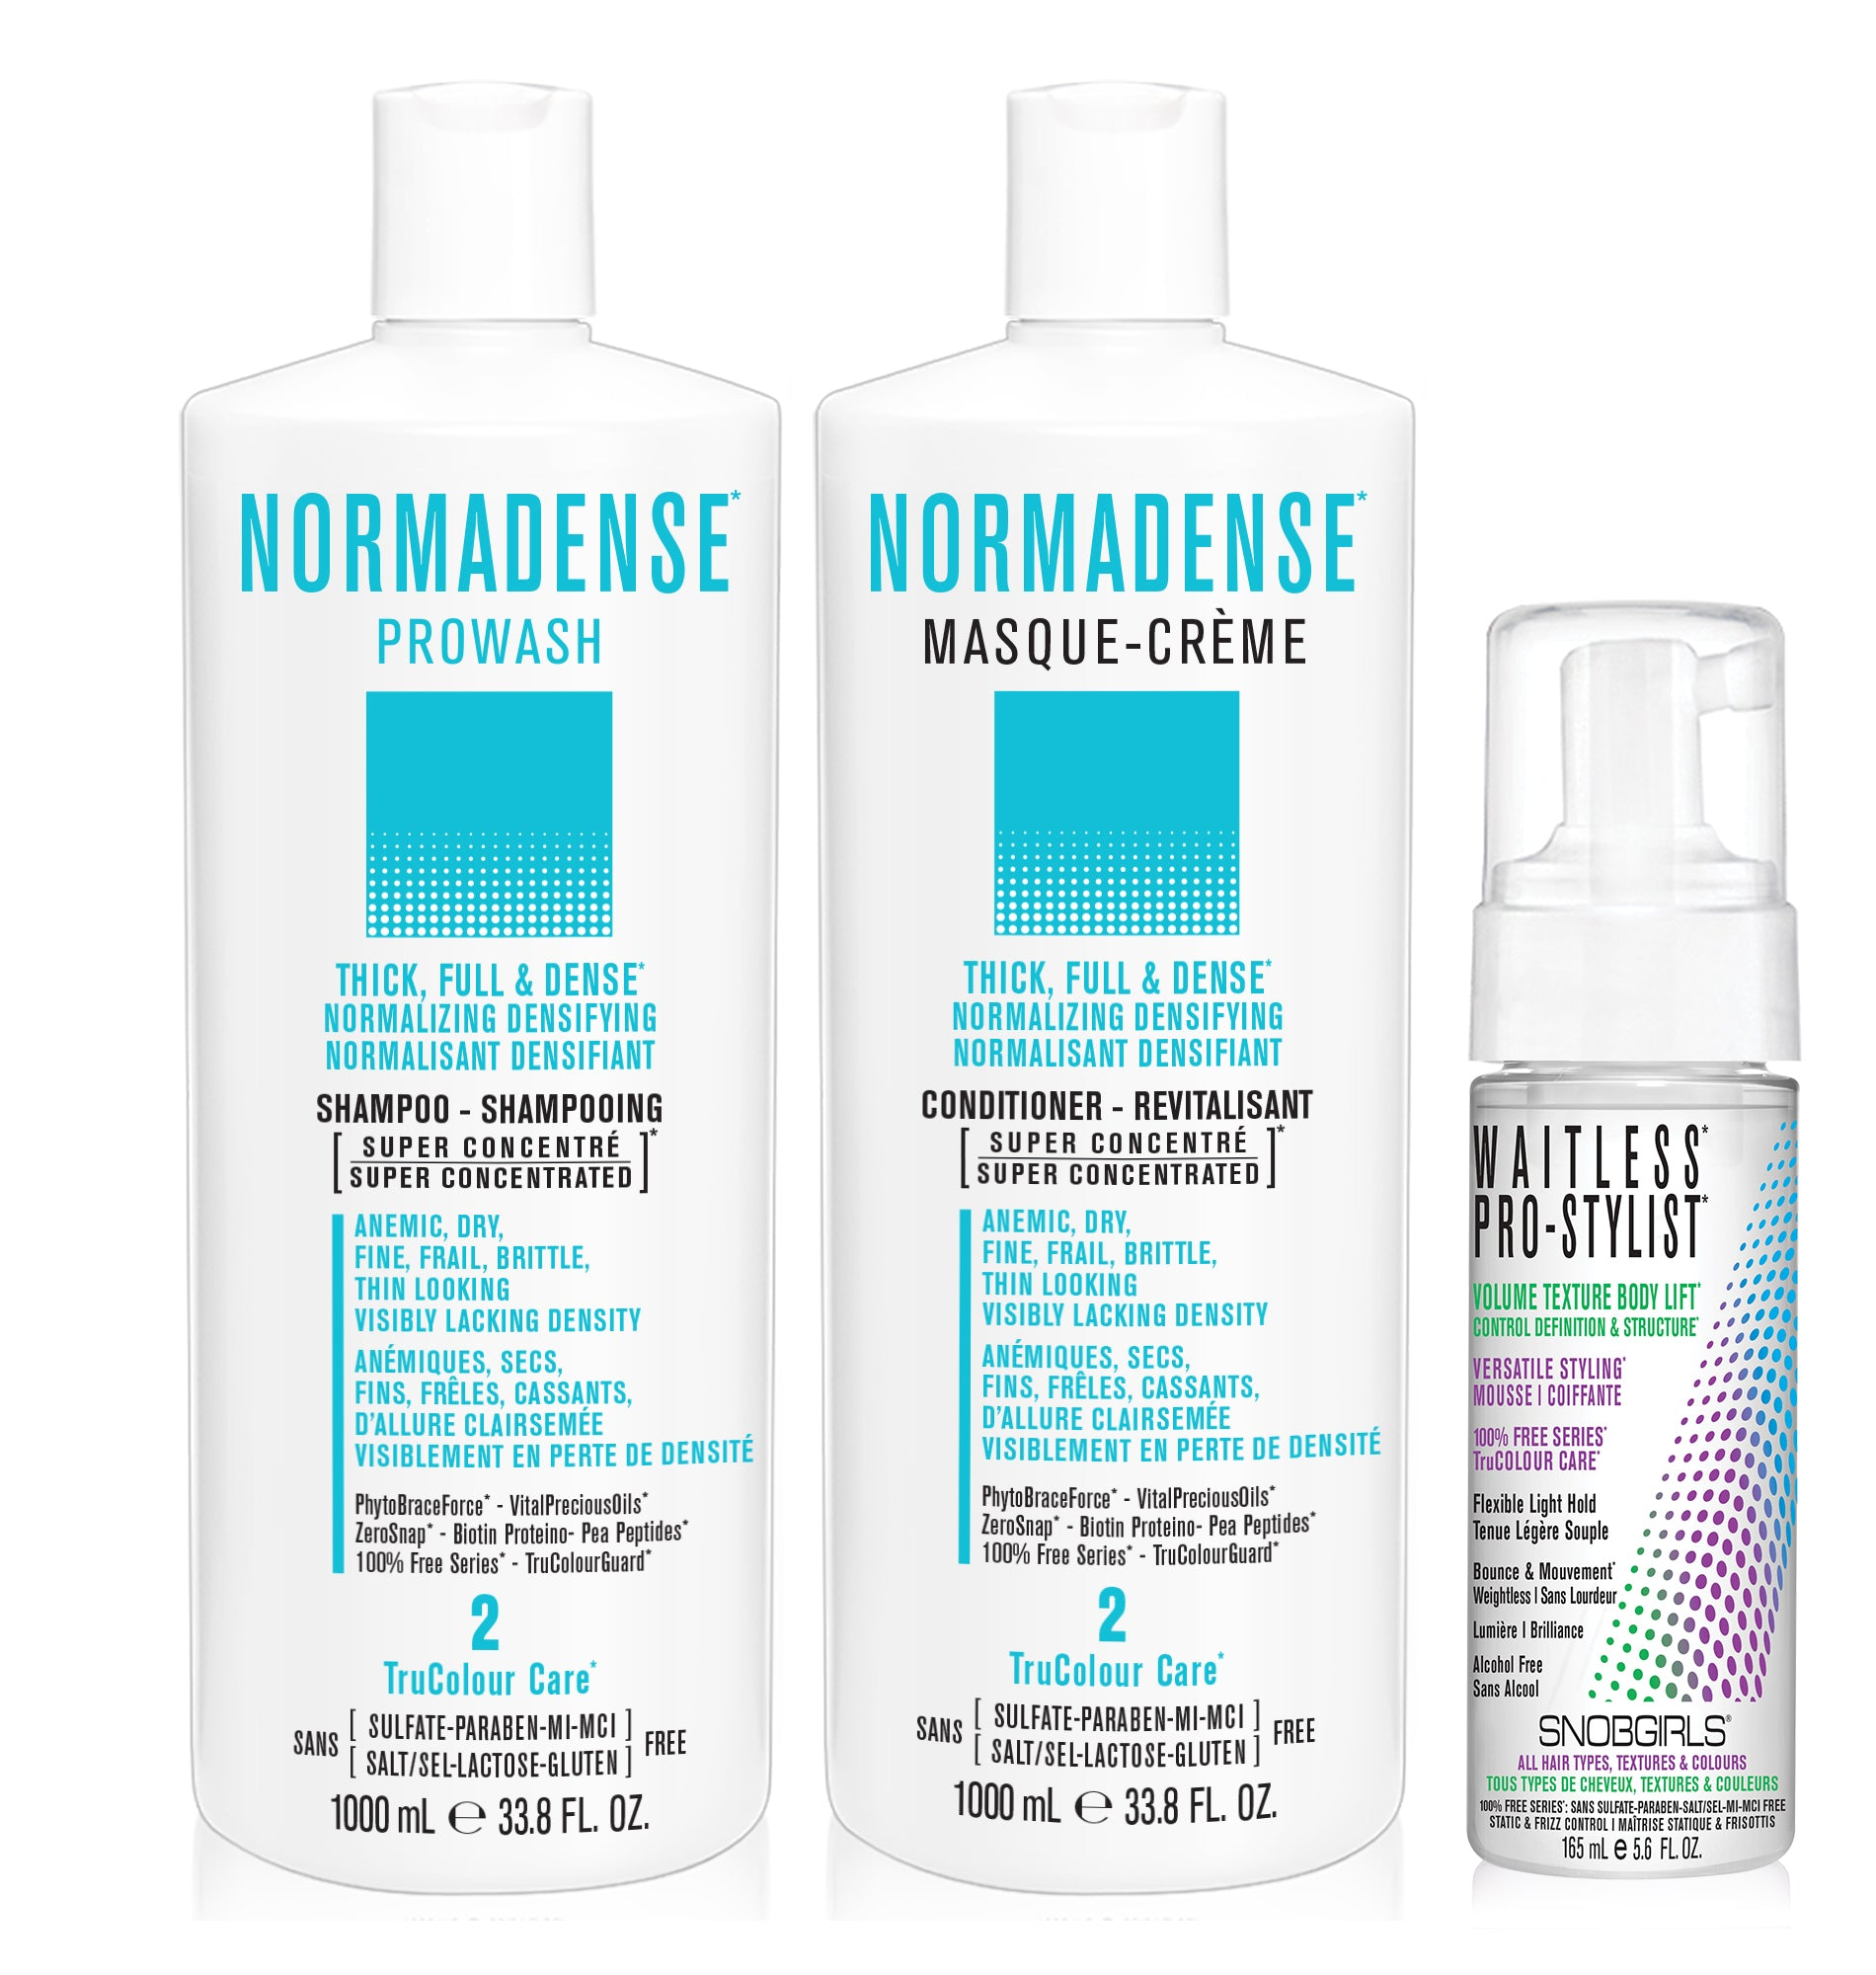 DUO NORMADENSE 2 Bundle- 1 Shampoo 33.8oz. with 1 Conditioner 33.8oz and 1 Styling Mousse - SNOBGIRLS.com